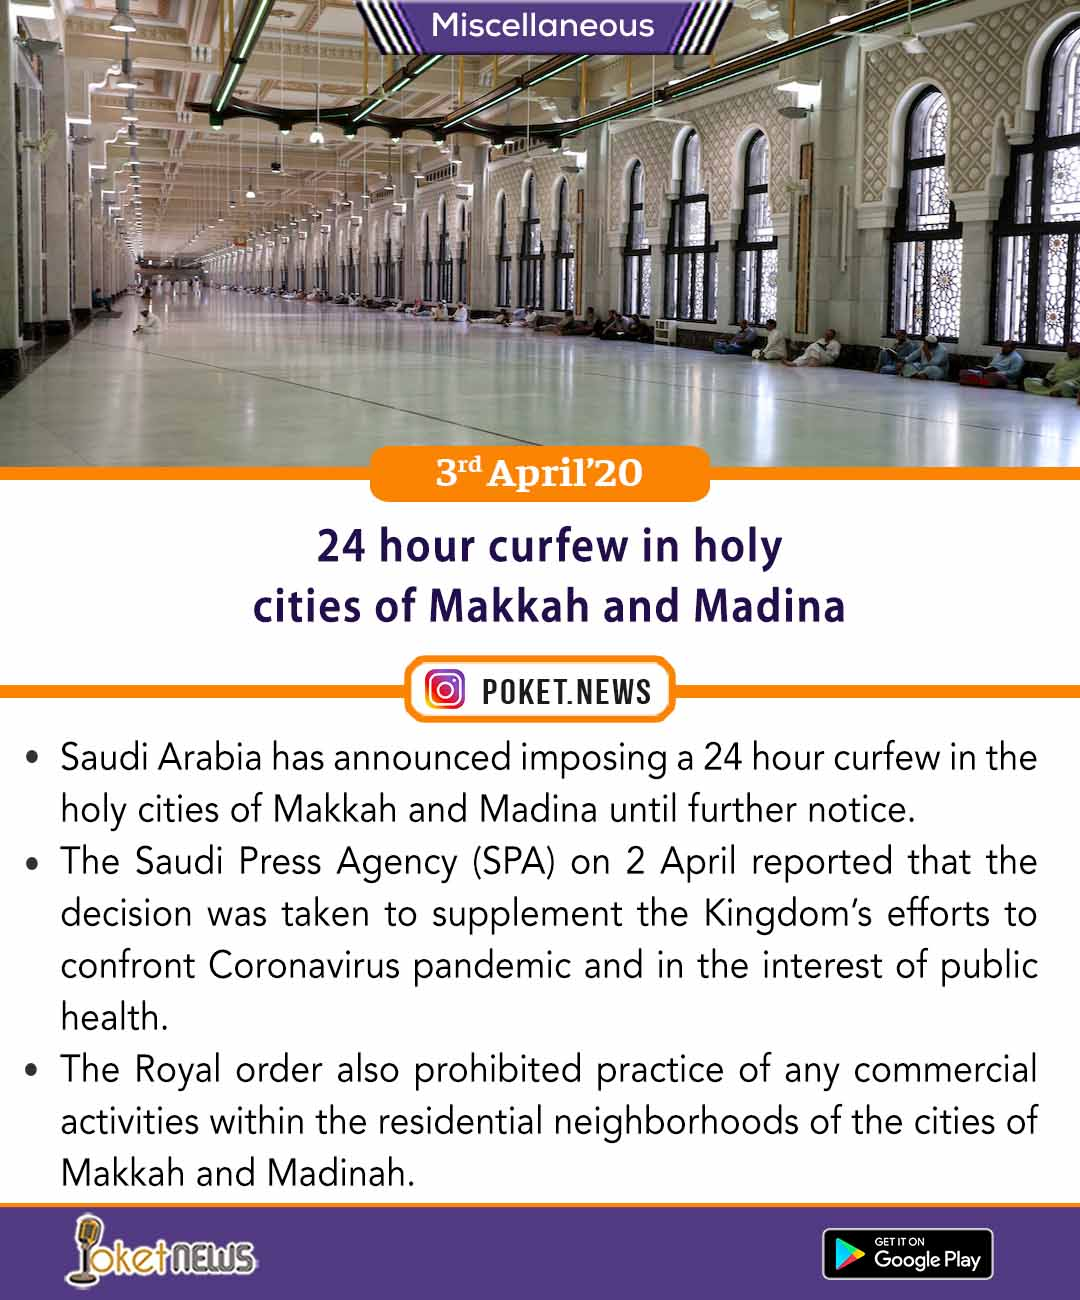 24 hour curfew in holy cities of Makkah and Madina